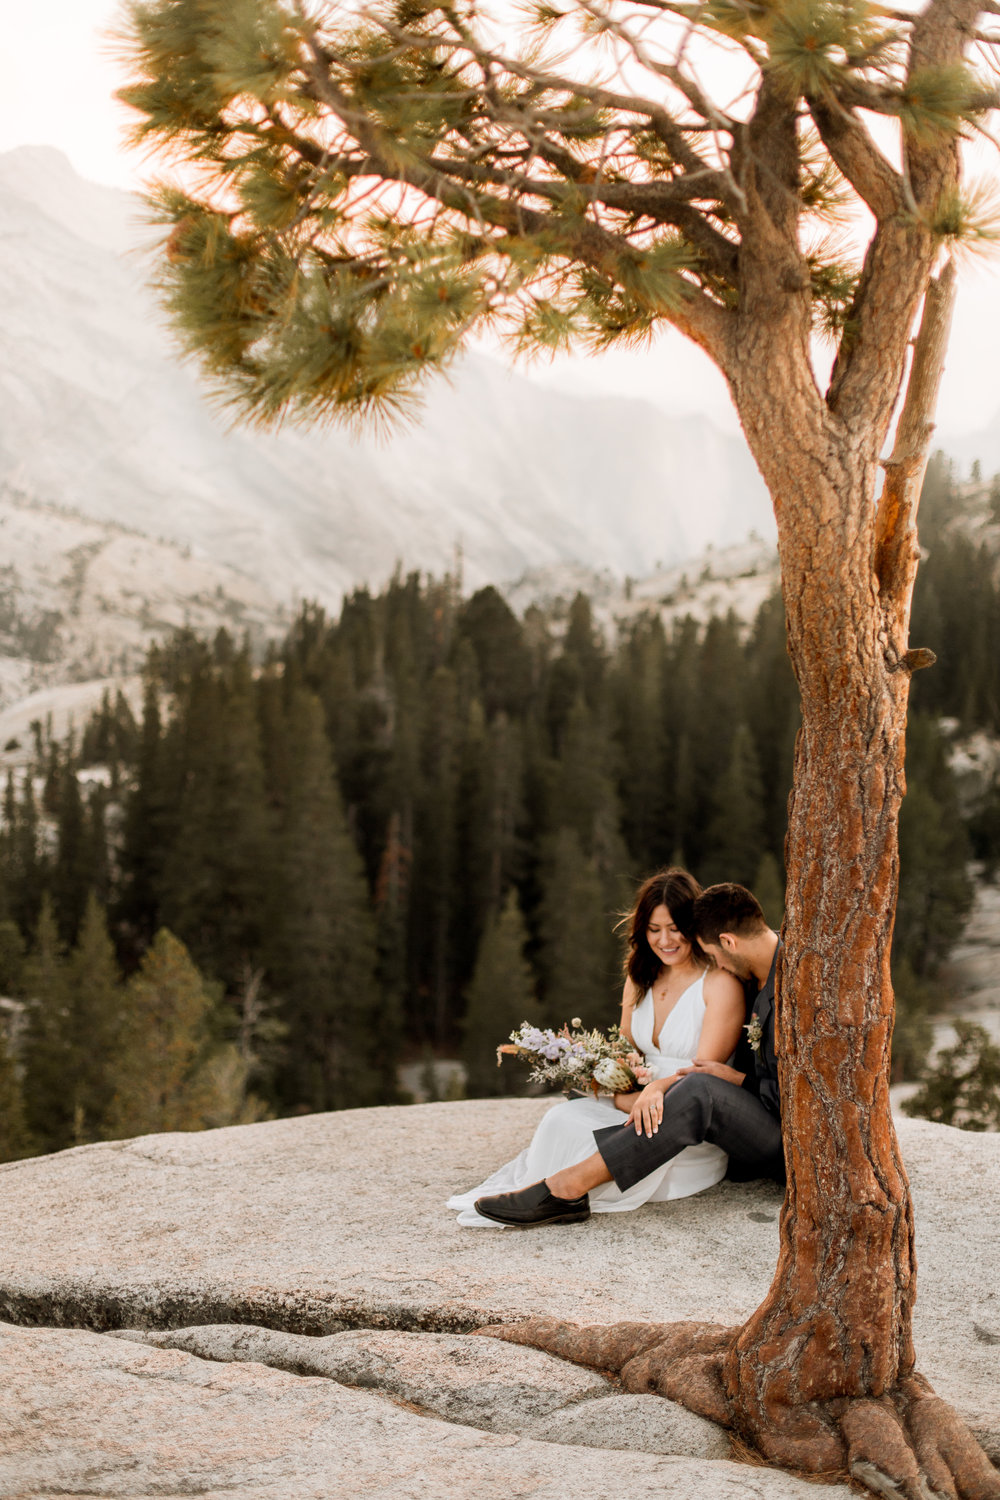 nicole-daacke-photography-yosemite-national-park-fall-elopement-adventurous-free-spirit-boho-bohemian-elopement-olmsted-point-yosemite-california-elope-adventure-elopement-photographer-60.jpg